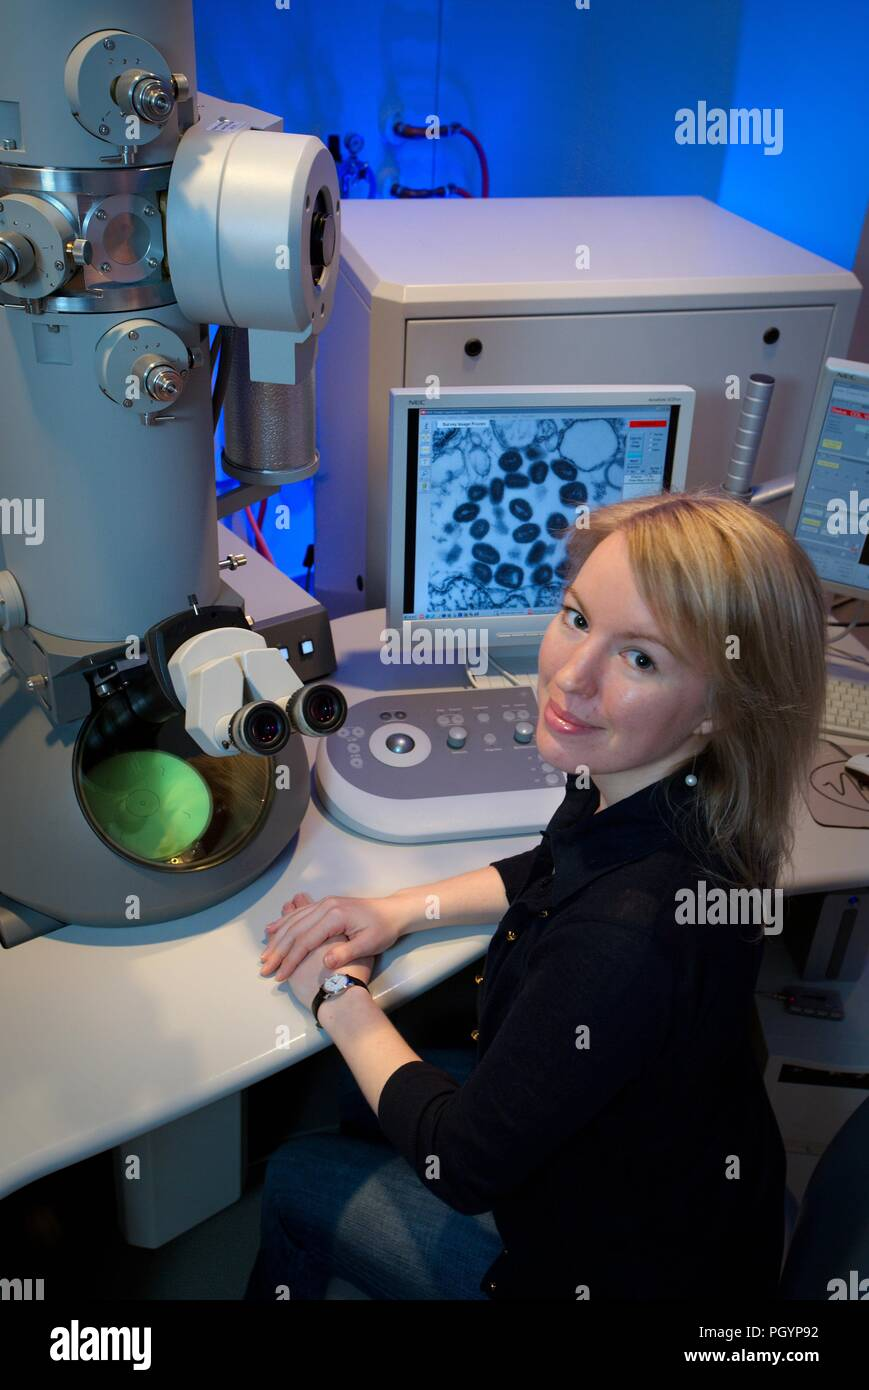 Centers for Disease Control and Prevention (CDC) intern, Maureen Metcalfe using transmission electron microscopes (TEM), 2011. Image courtesy Centers for Disease Control / Cynthia Goldsmith. () - Stock Image